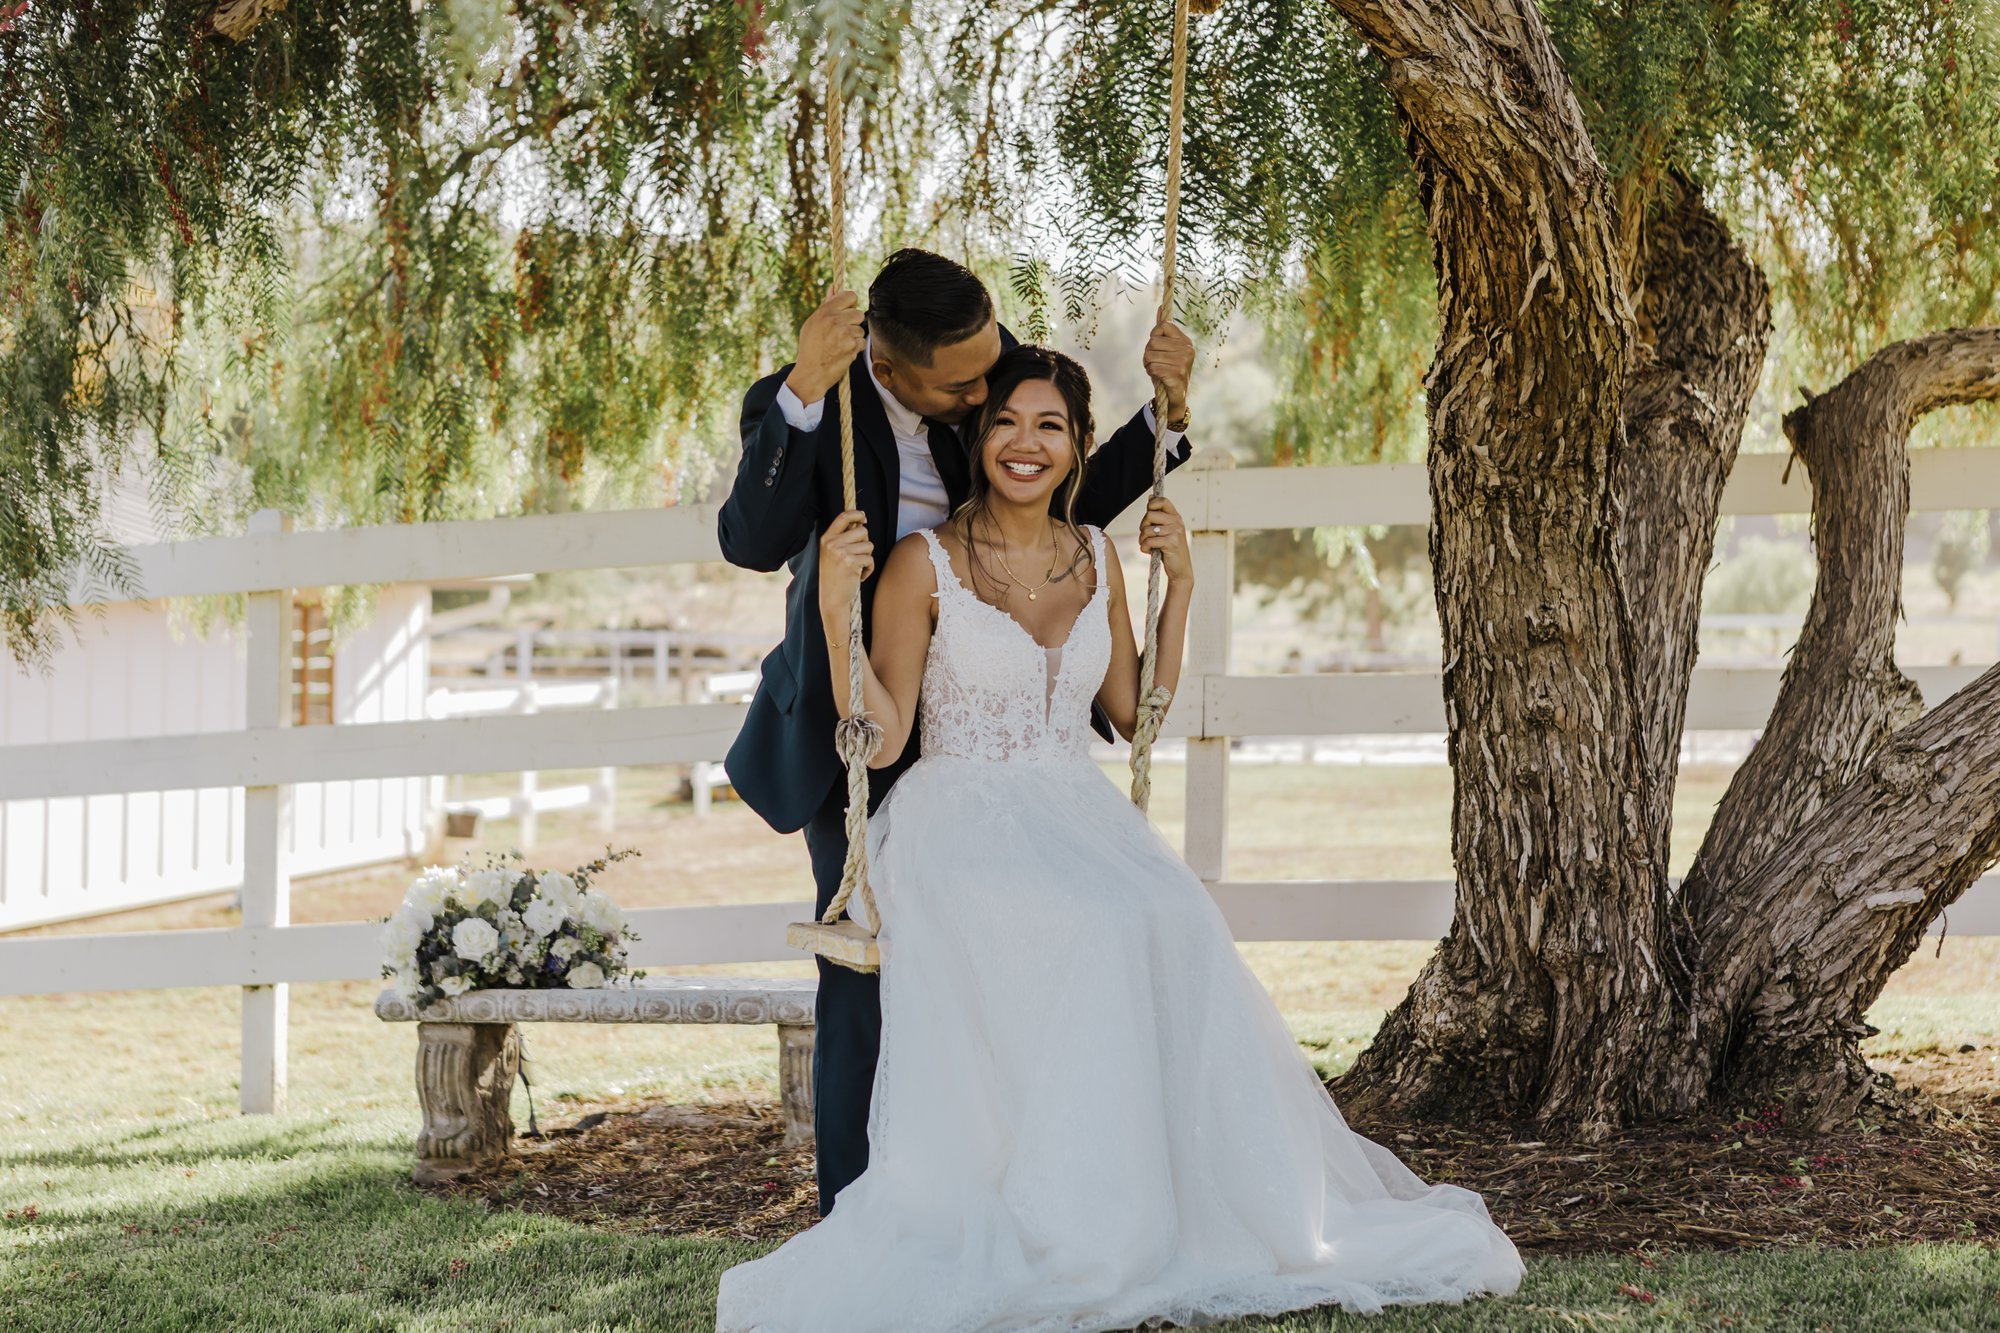 How to Select Eco-Friendly Wedding Vendors and Venues